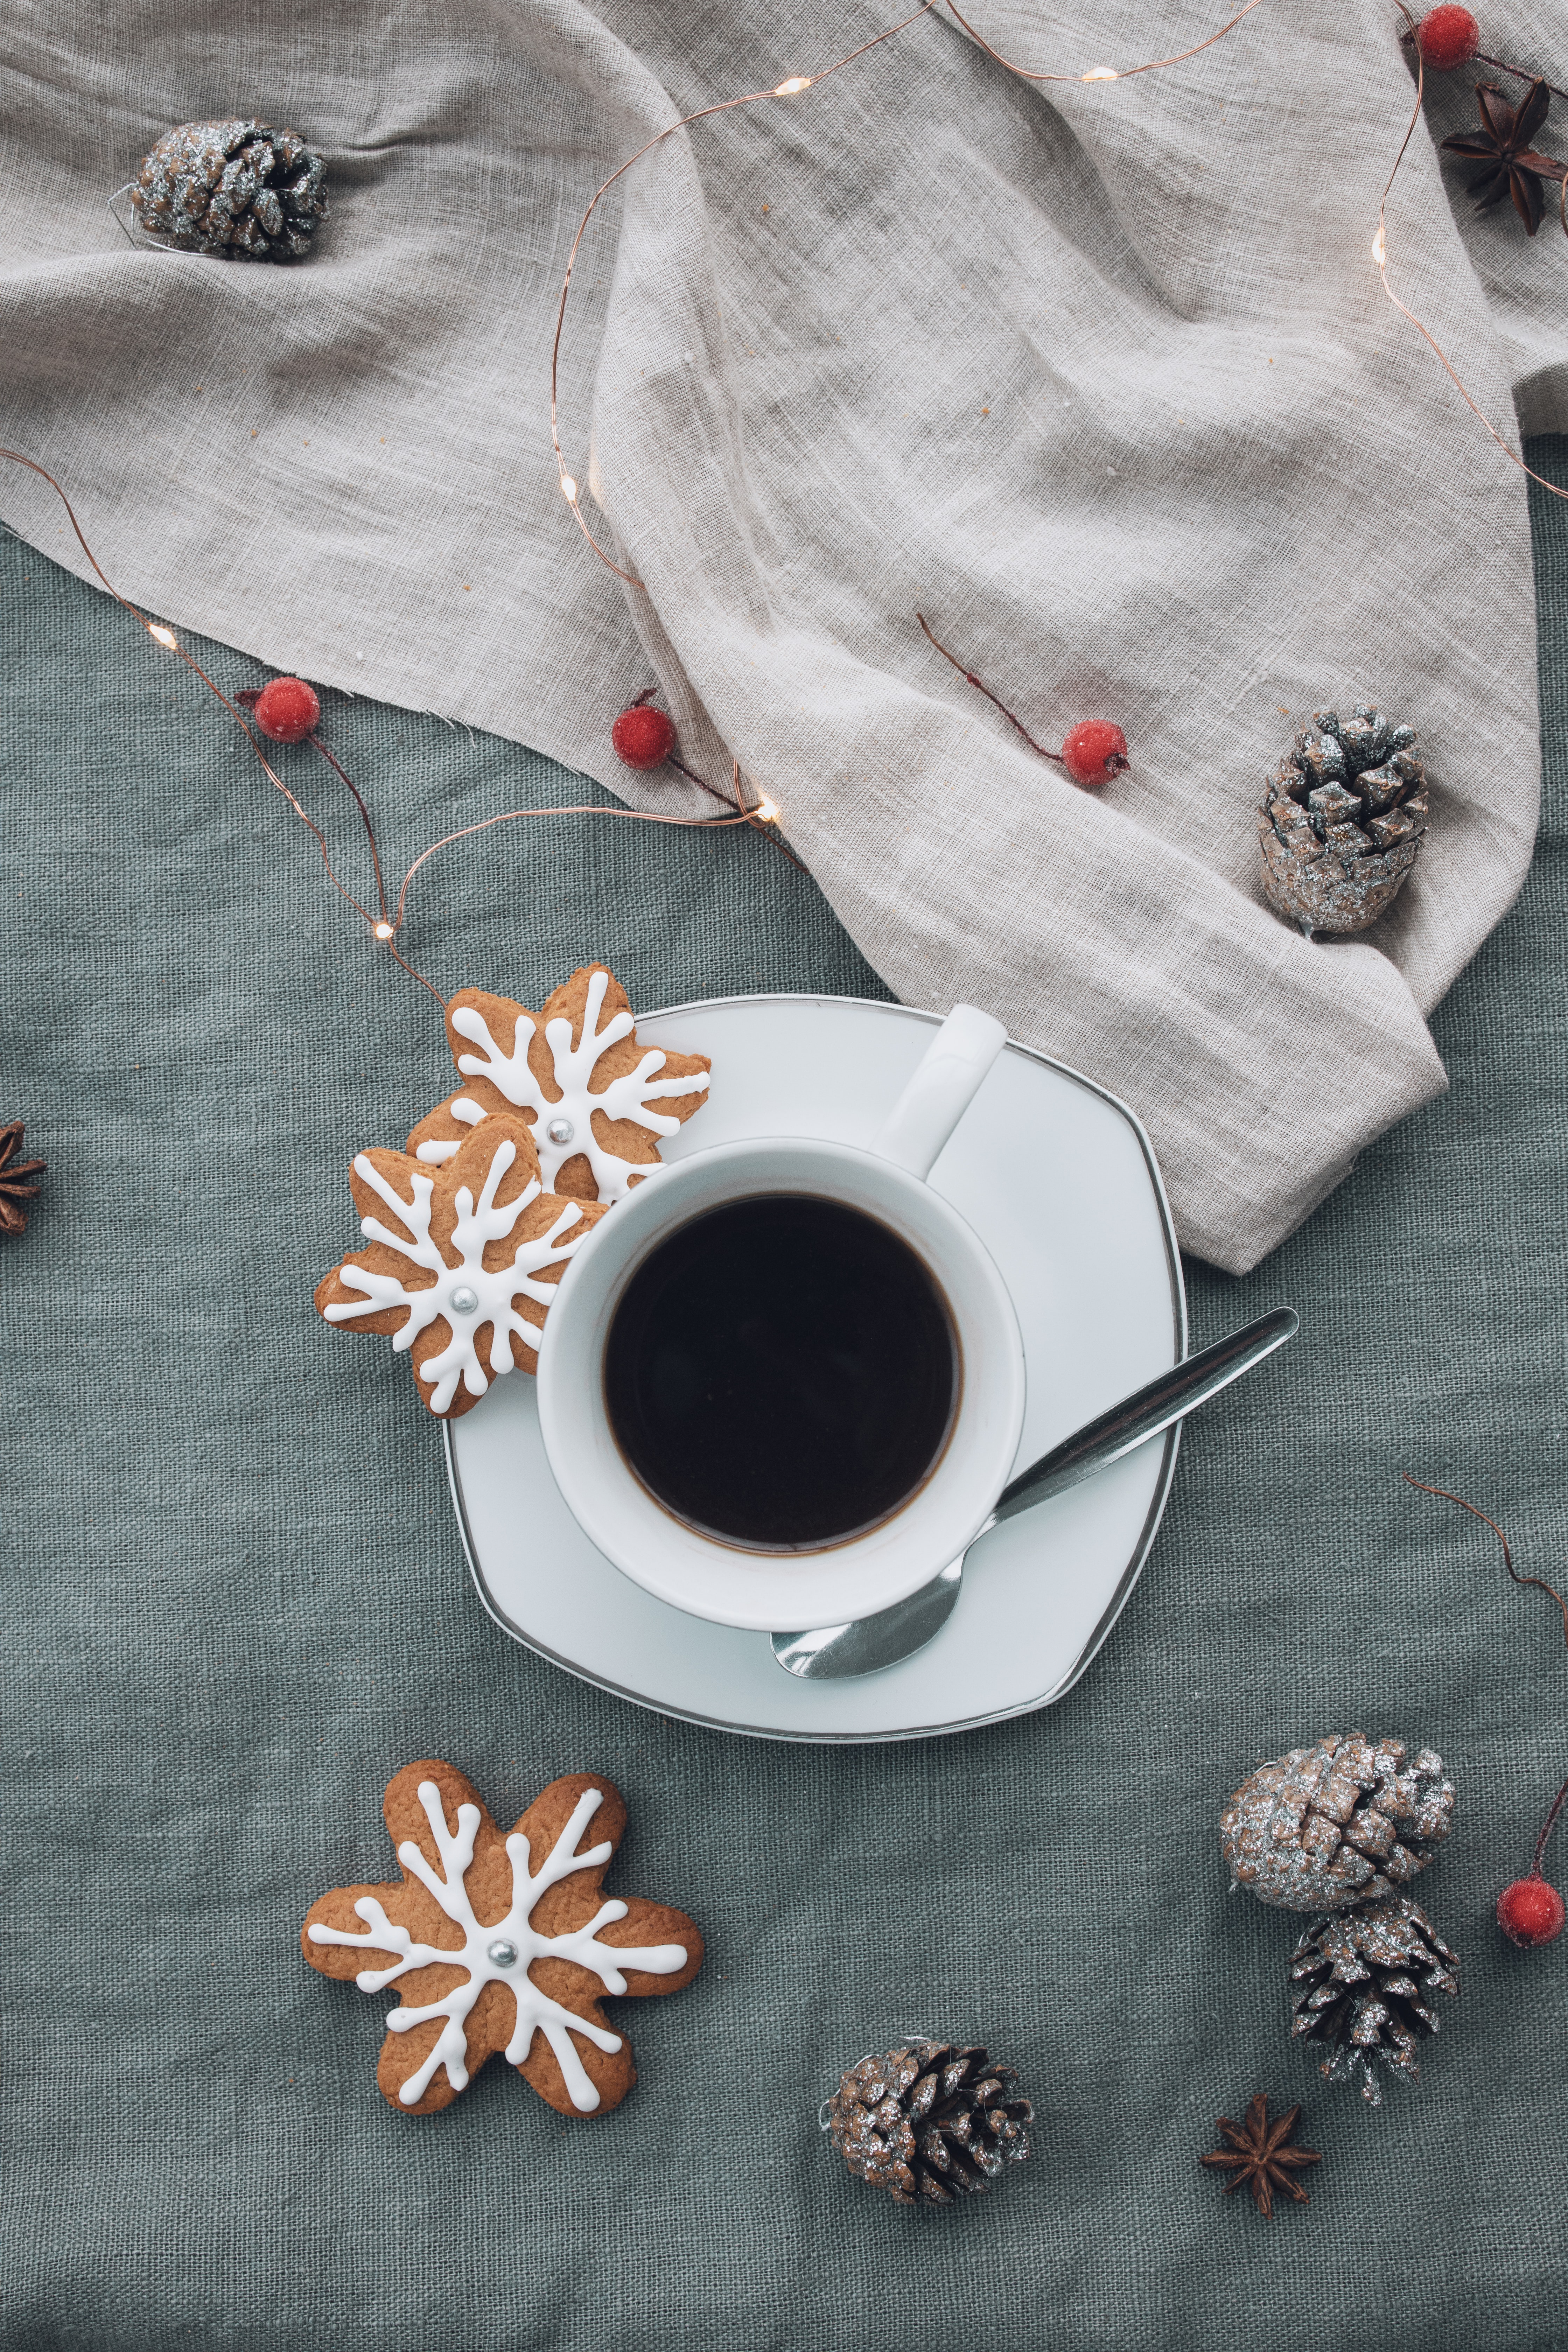 104518 download wallpaper Food, Cup, Coffee, Cookies, Garland, Cones screensavers and pictures for free